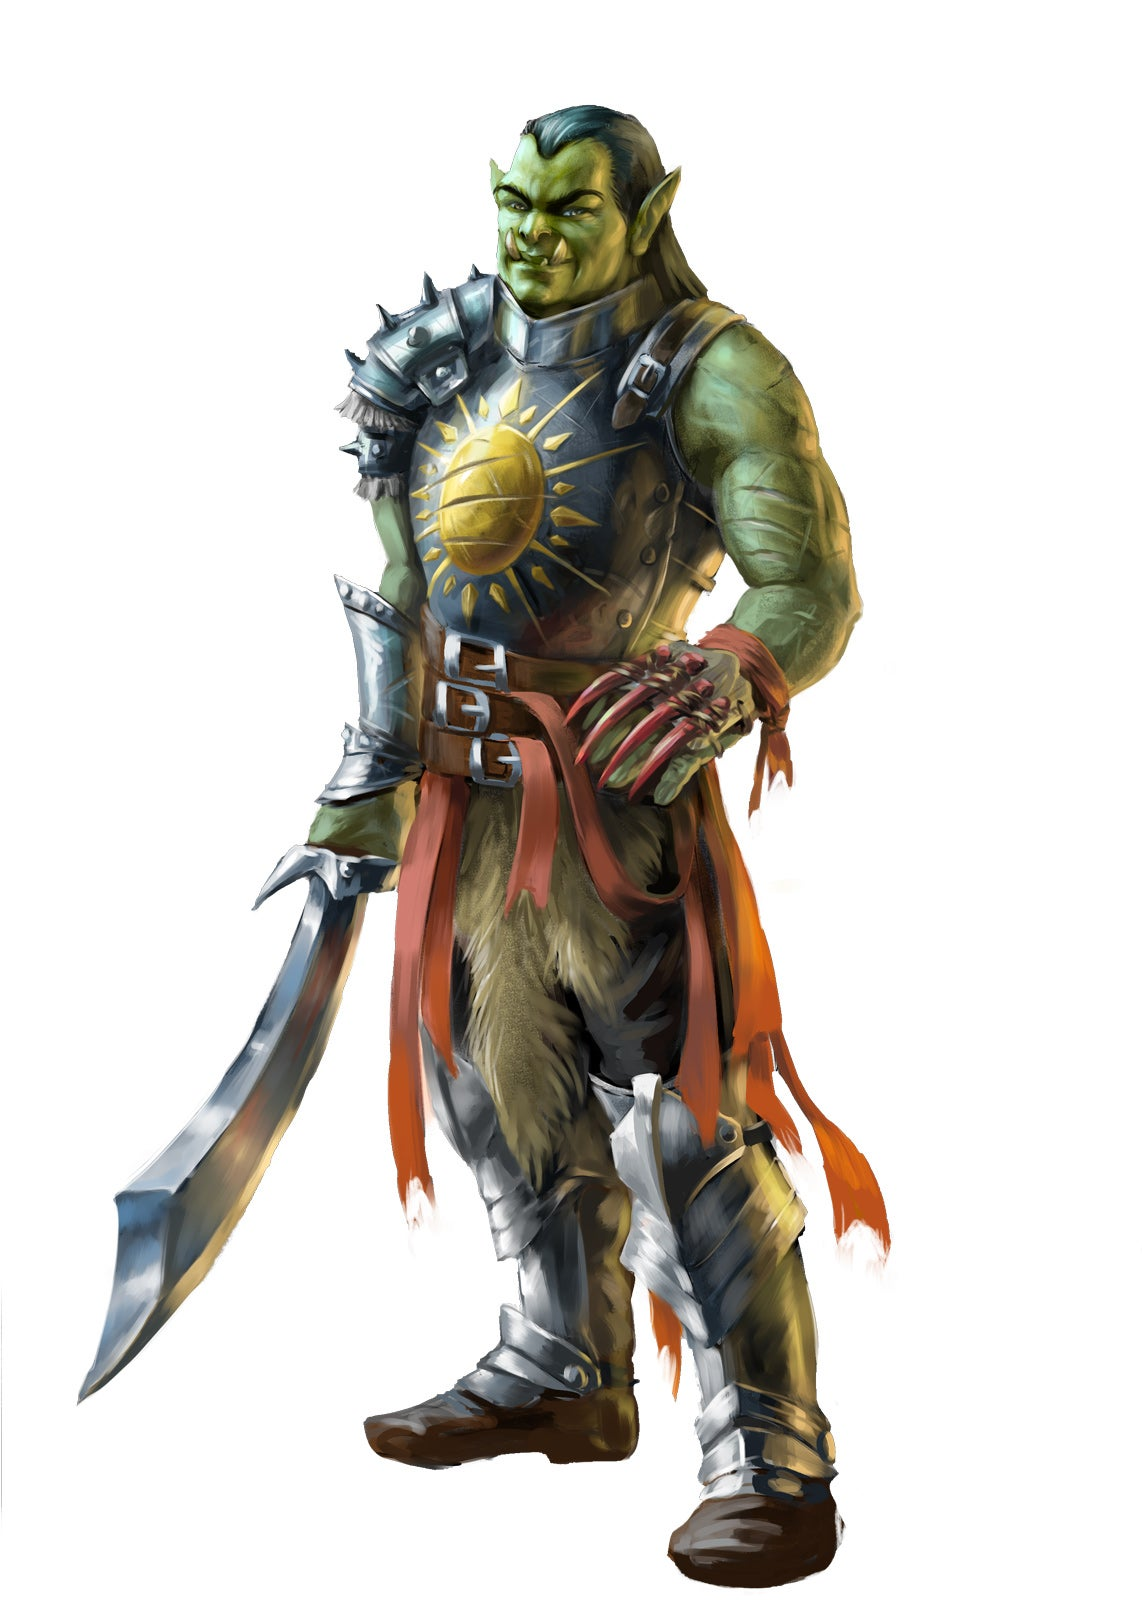 An armored orc with a sunburst on their chest plate and a scimitar in their right hand